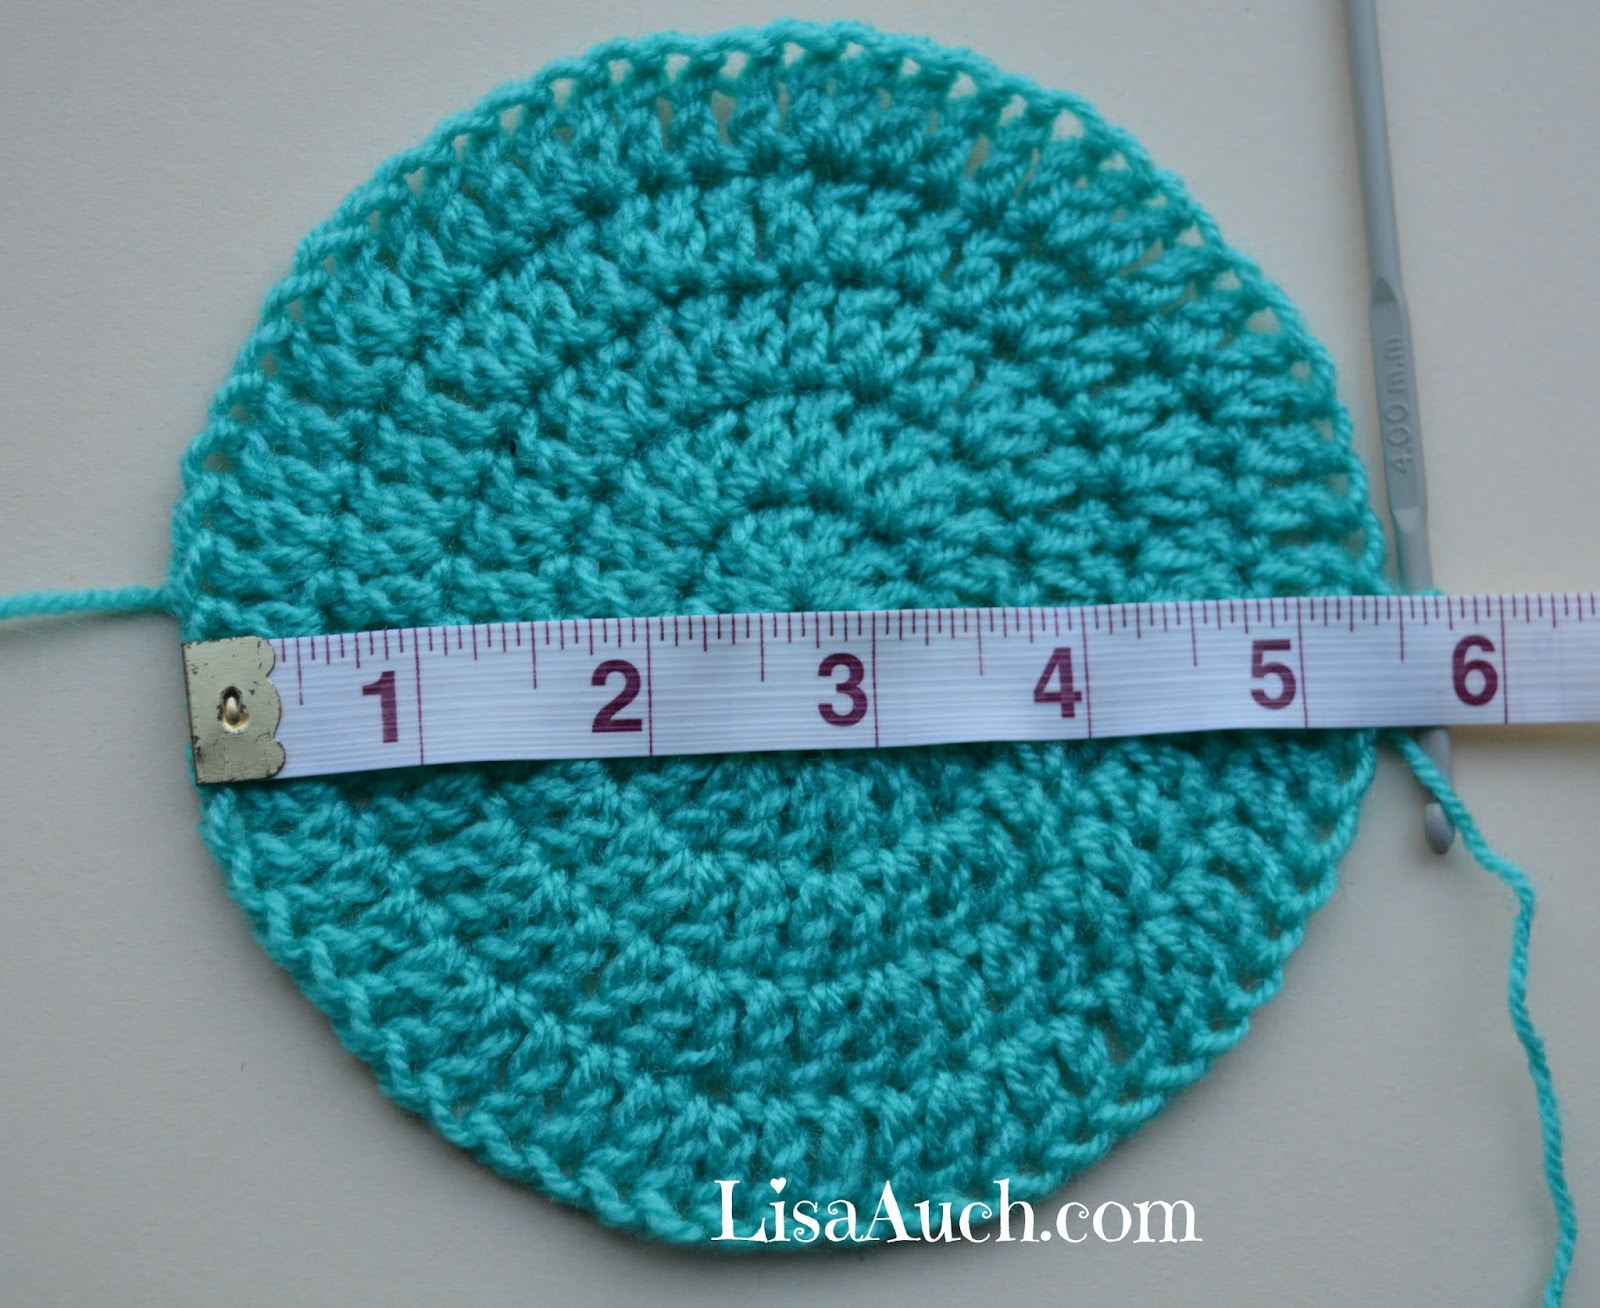 Crocheting Letters Into A Hat : free crochet baby hat pattern, baby beanie free crochet pattern- all ...